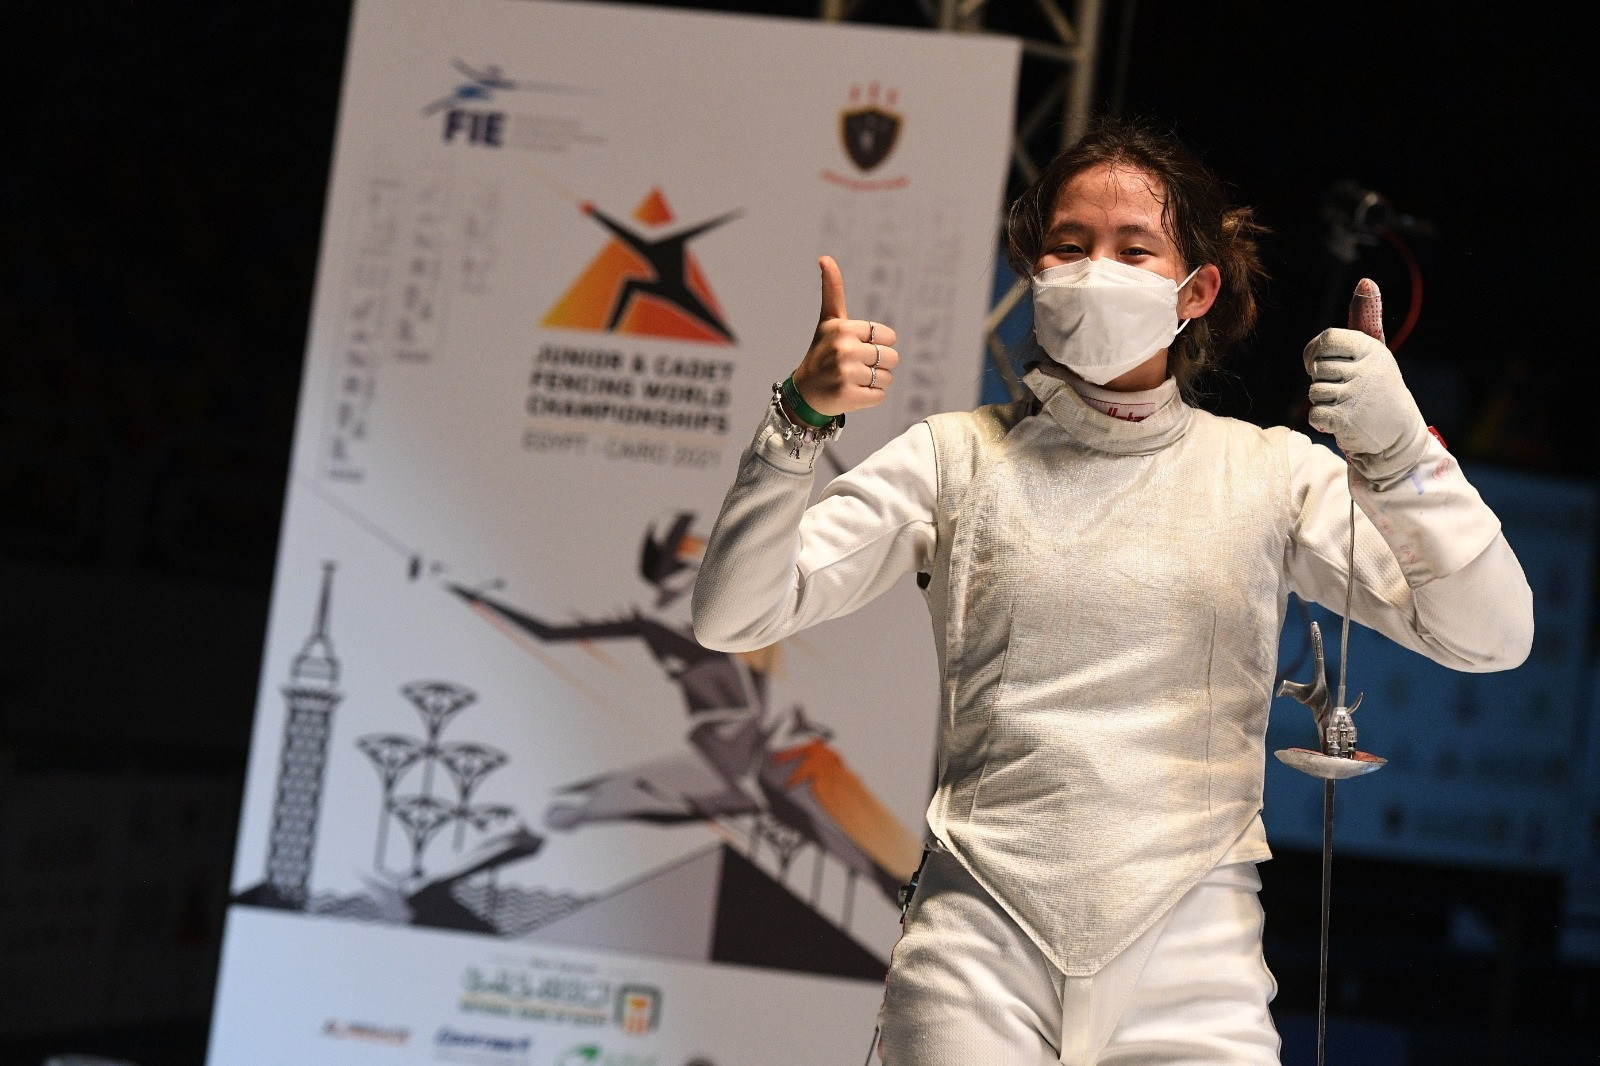 Guo wins second medal in Cairo with foil gold in Cadet World Fencing Championships